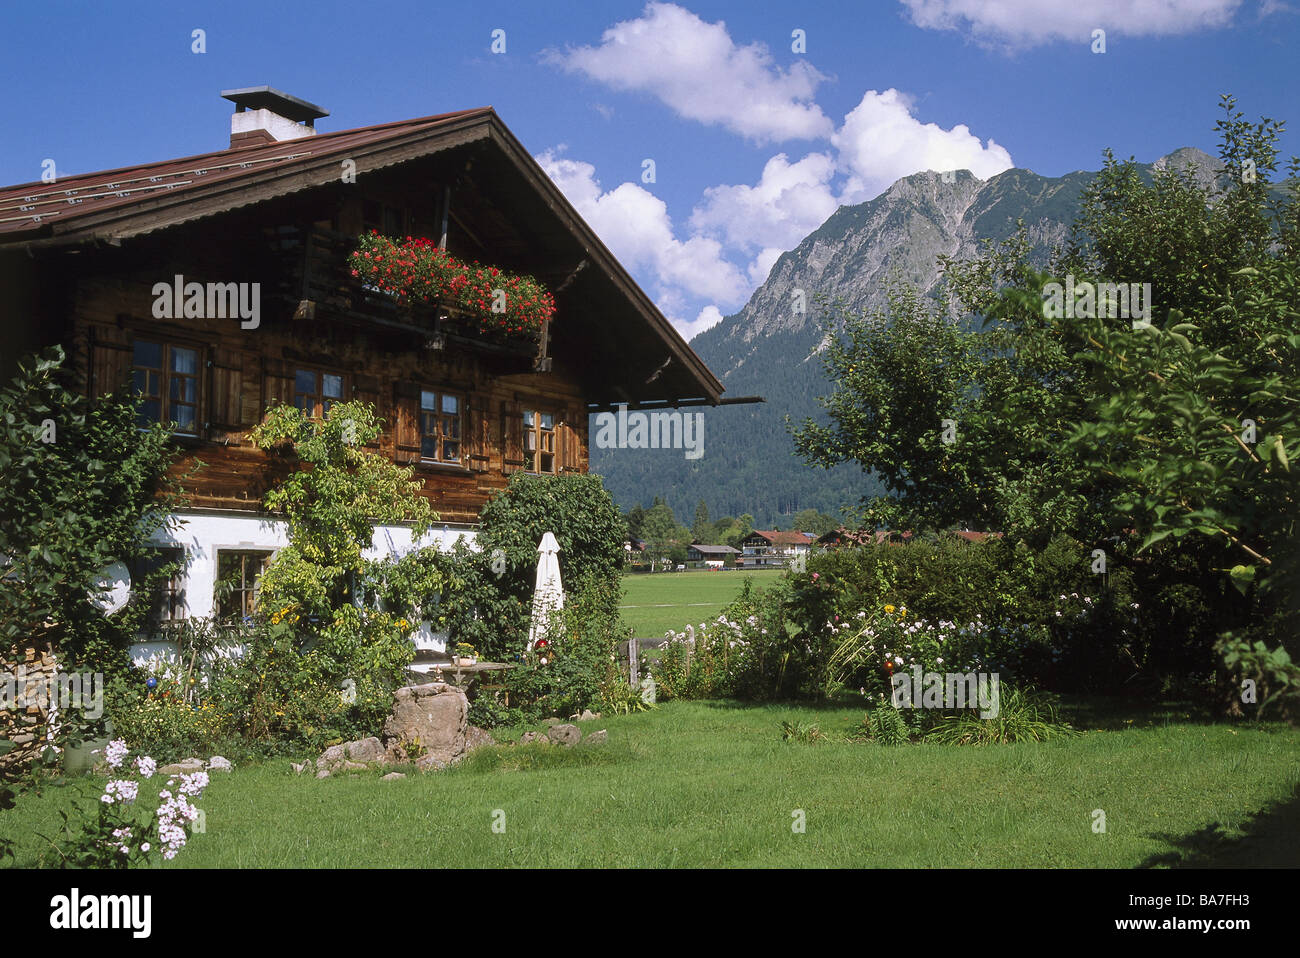 Germany Oberallgäu Colonel Village Farmhouse Summers Buildings House  Residence Living Rural Typically Outside Garden Flowers